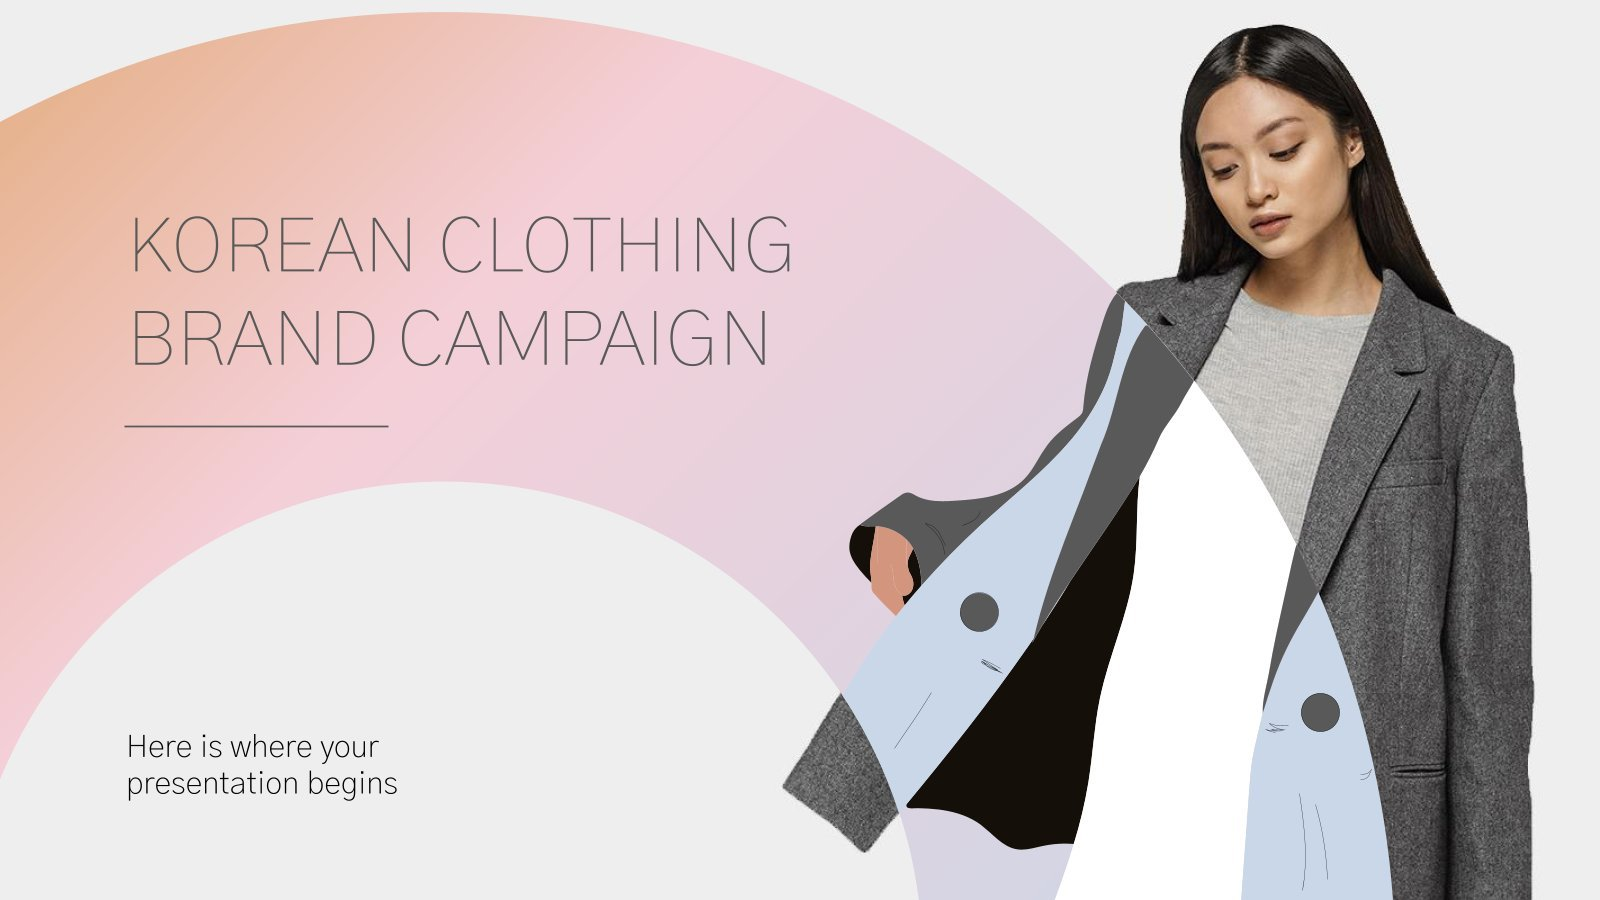 Korean Clothing Brand Campaign presentation template